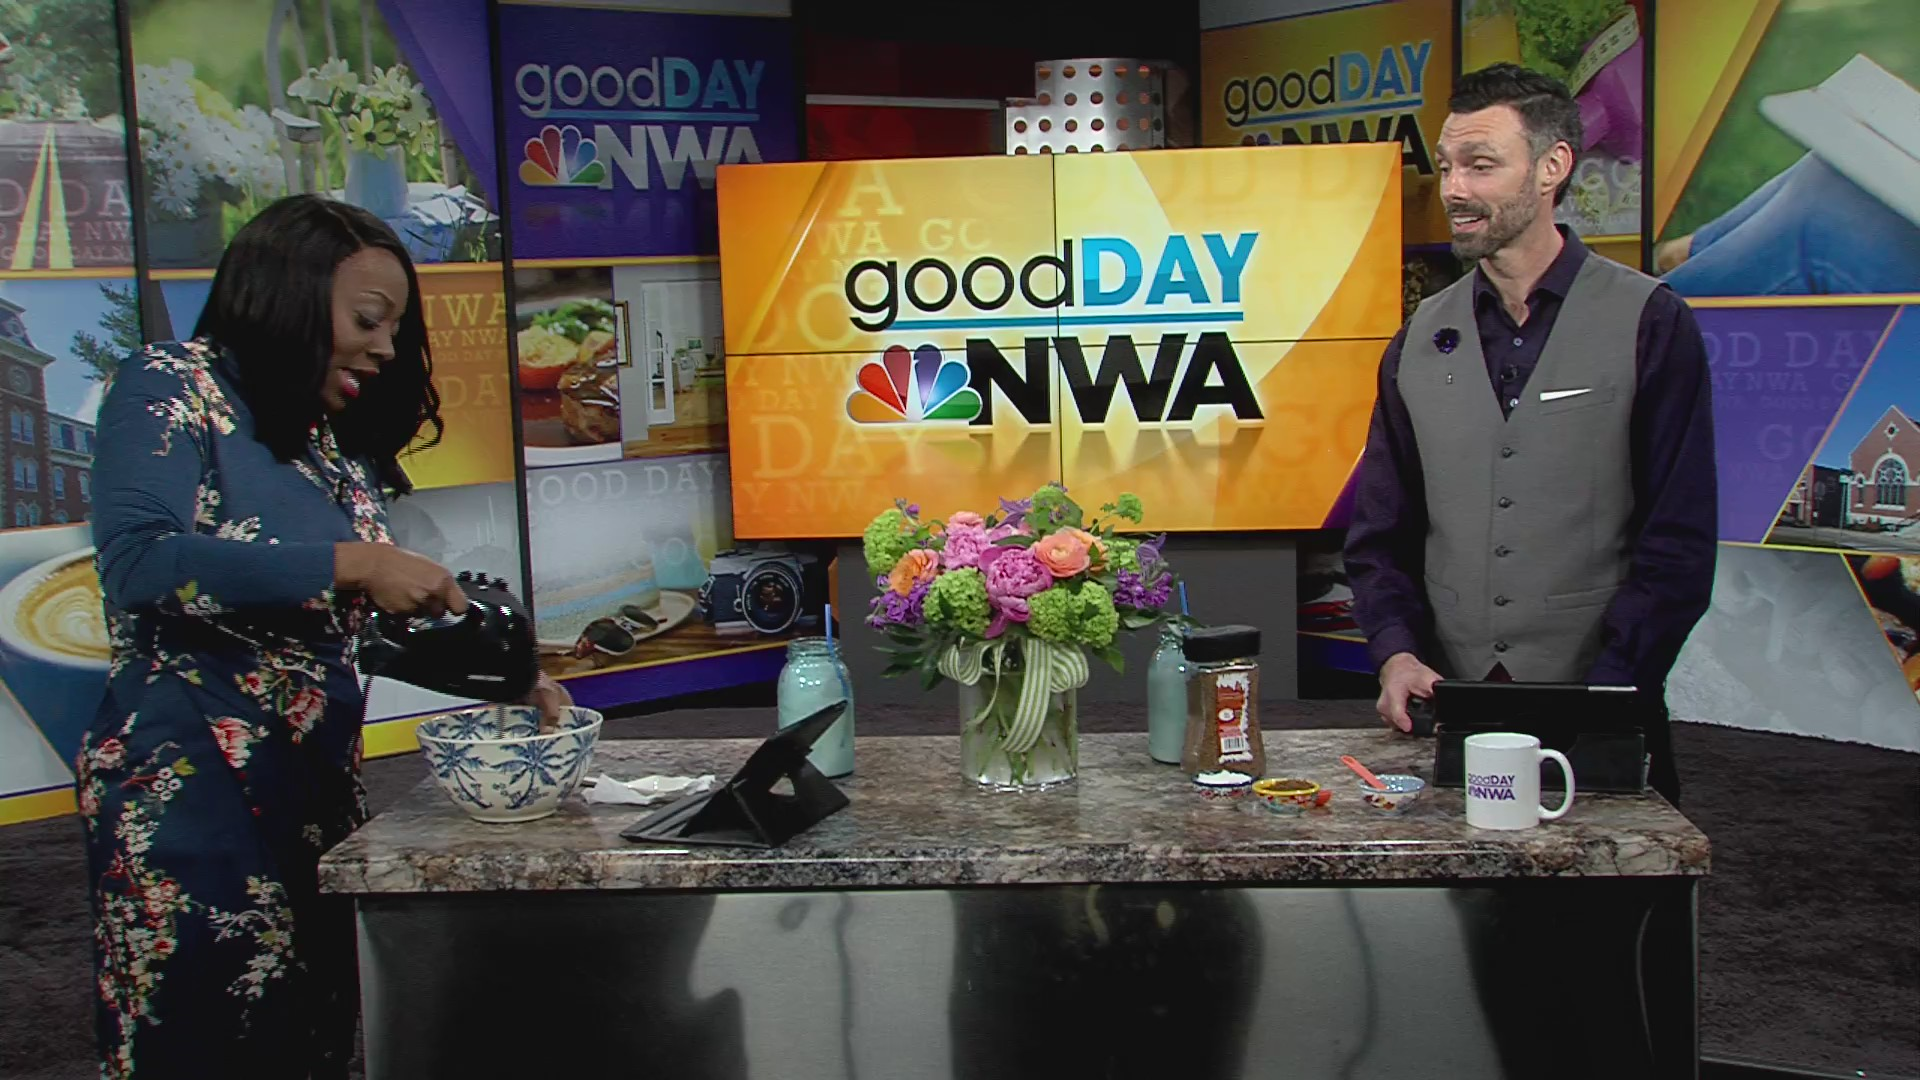 Good Day Nwa Give Your Coffee A Makeover Part 2 Knwa Fox24